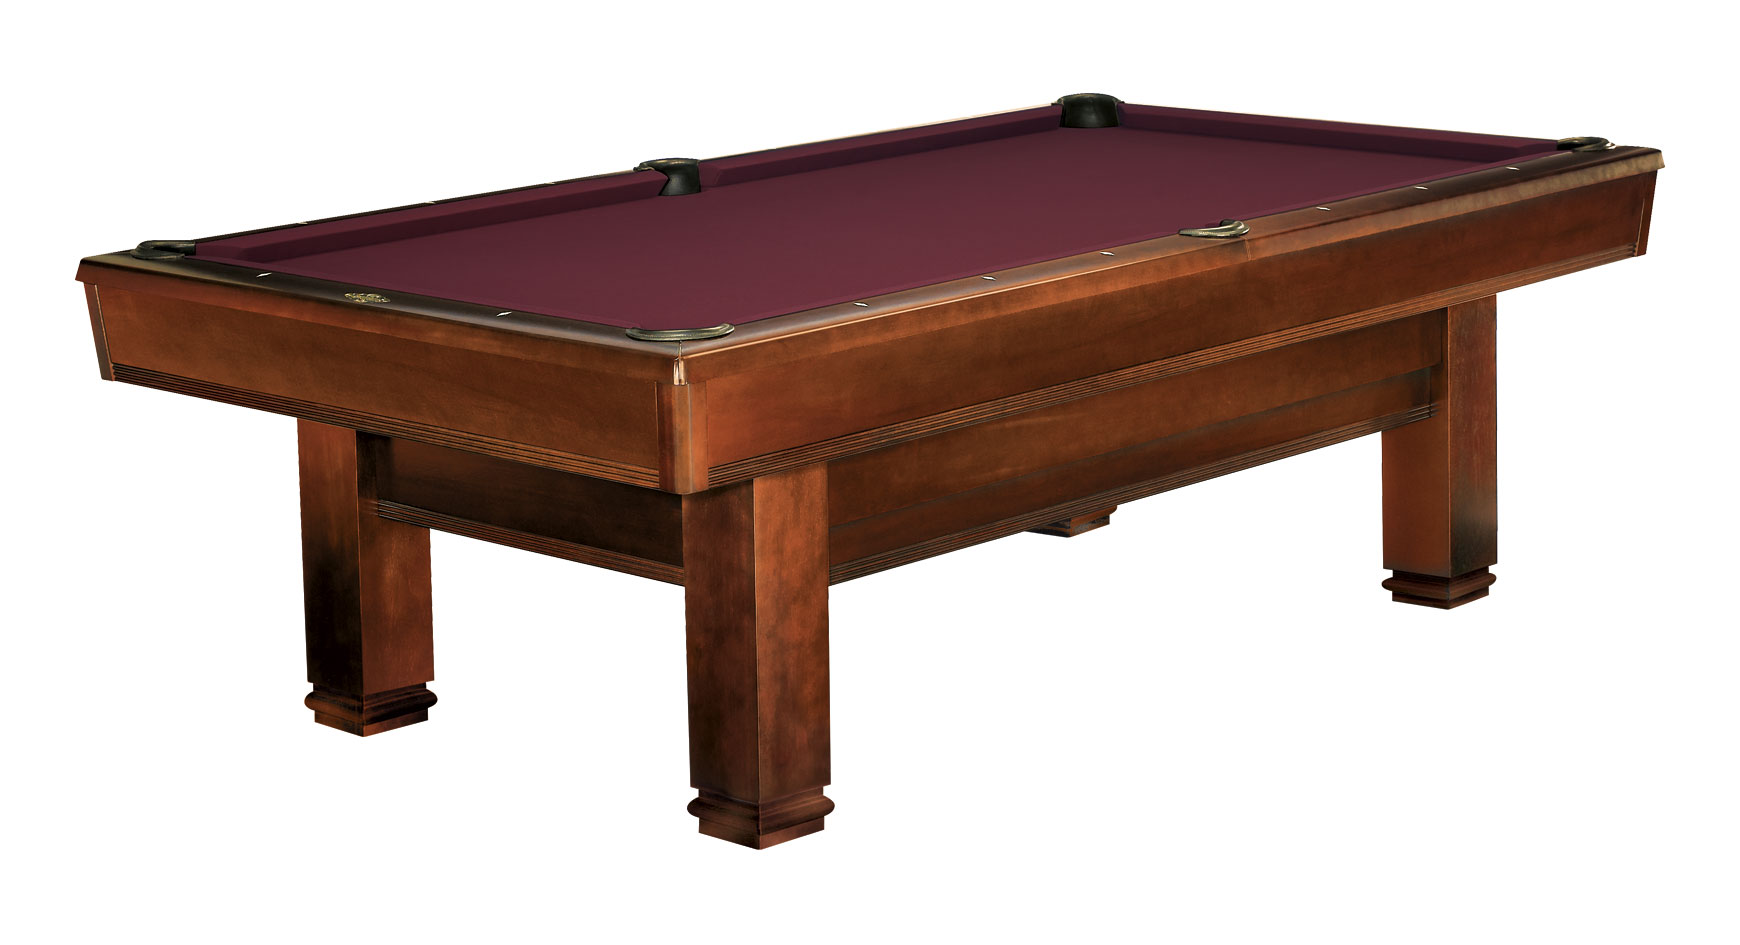 Bridgeport Billiards Tables - Amf pool table models